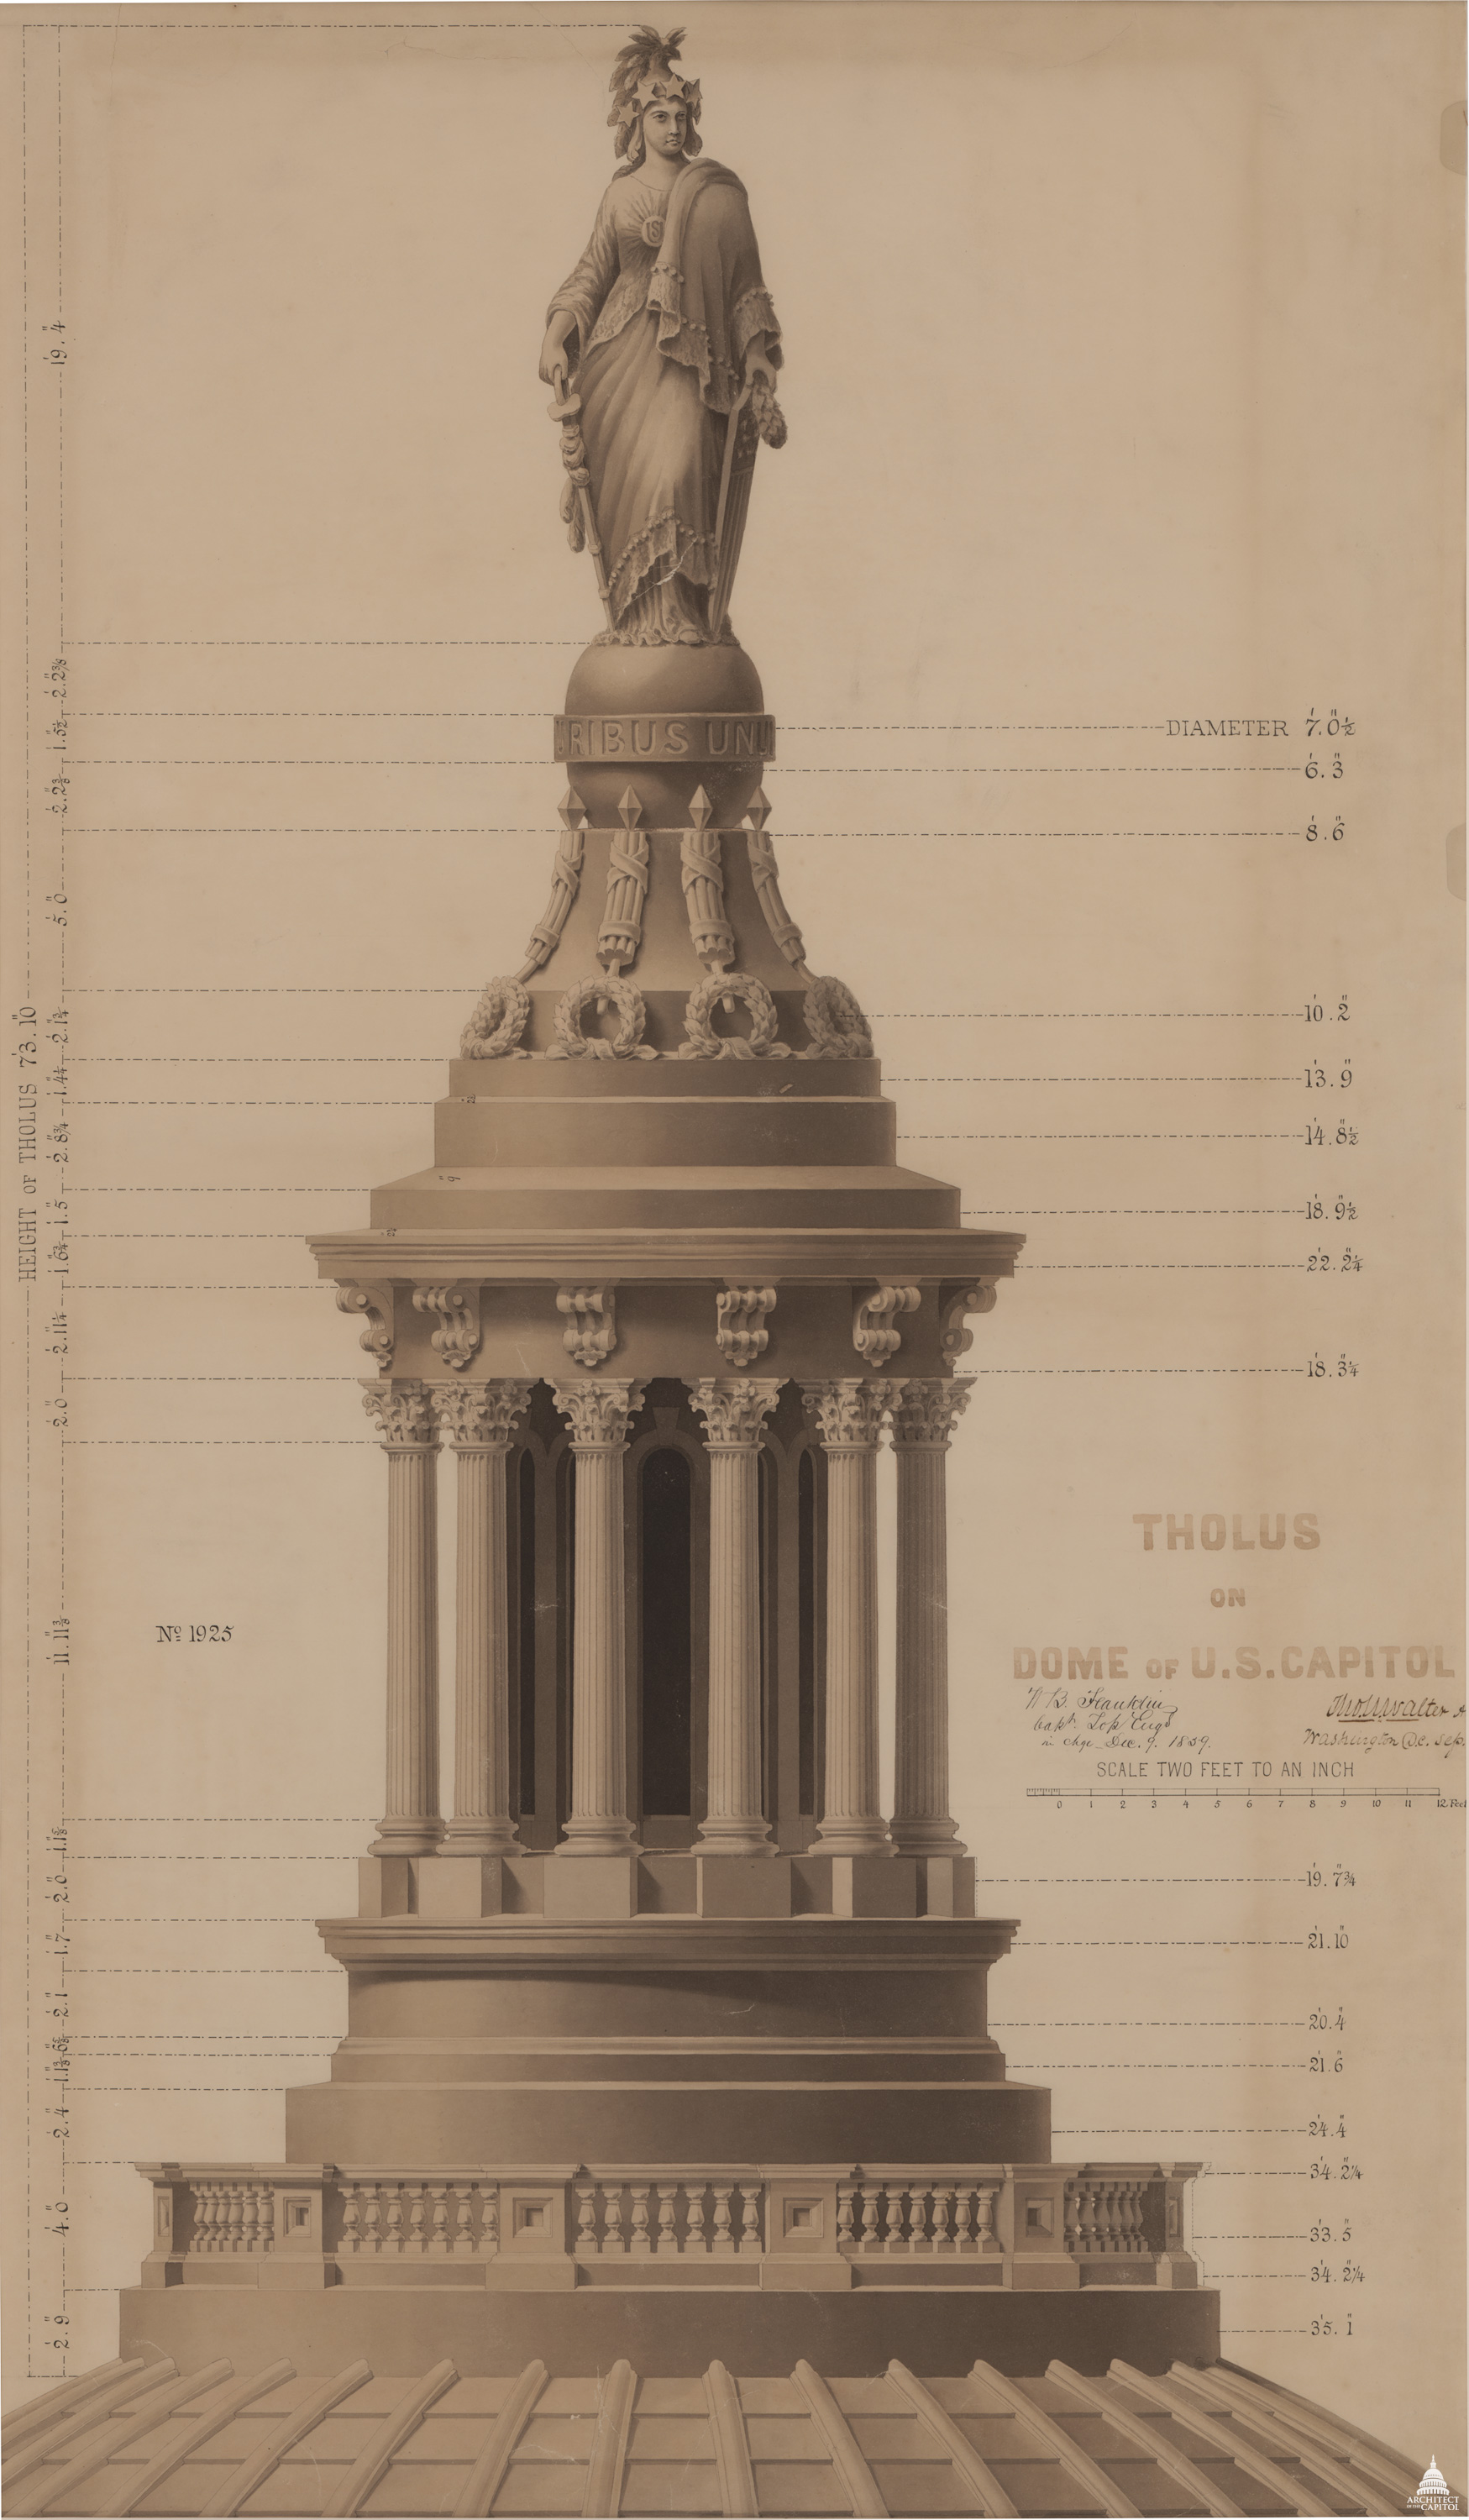 Philip Reid and the Statue of Freedom | Architect of the Capitol ...